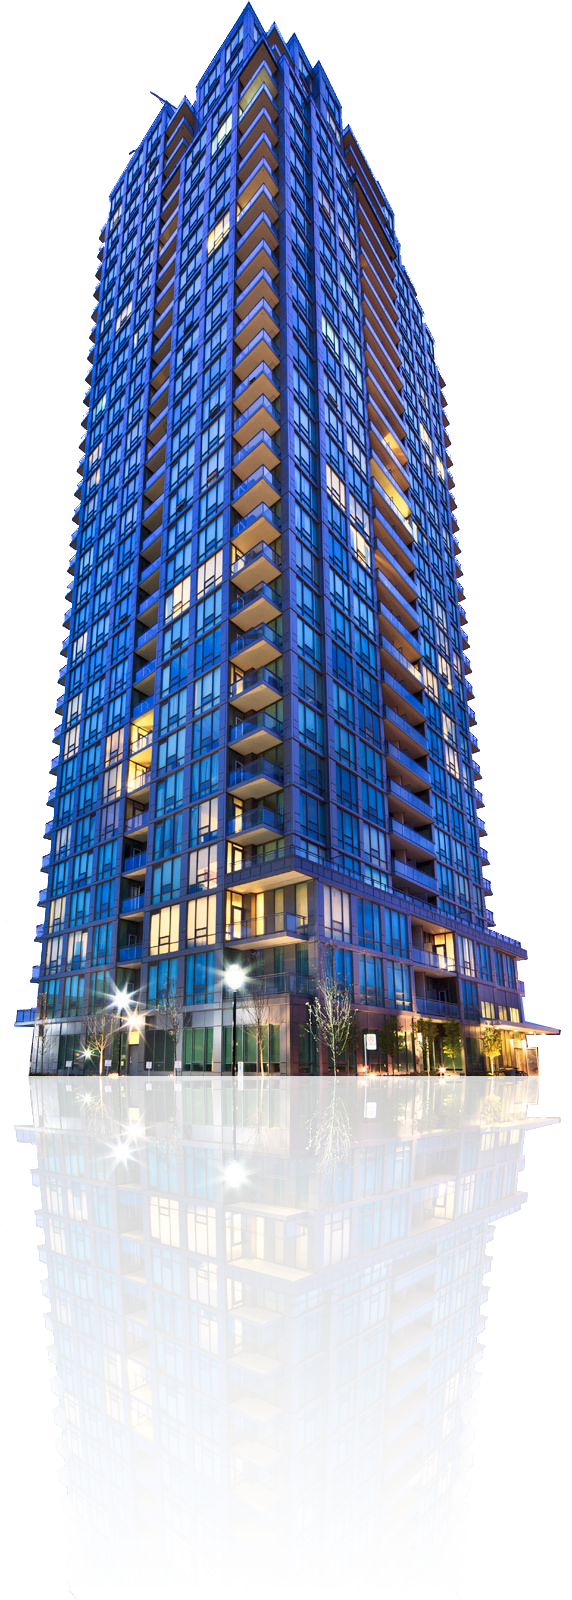 buy a mississauga condo Buy A Mississauga Condo With IVAN Real Estate buy mississauga condo